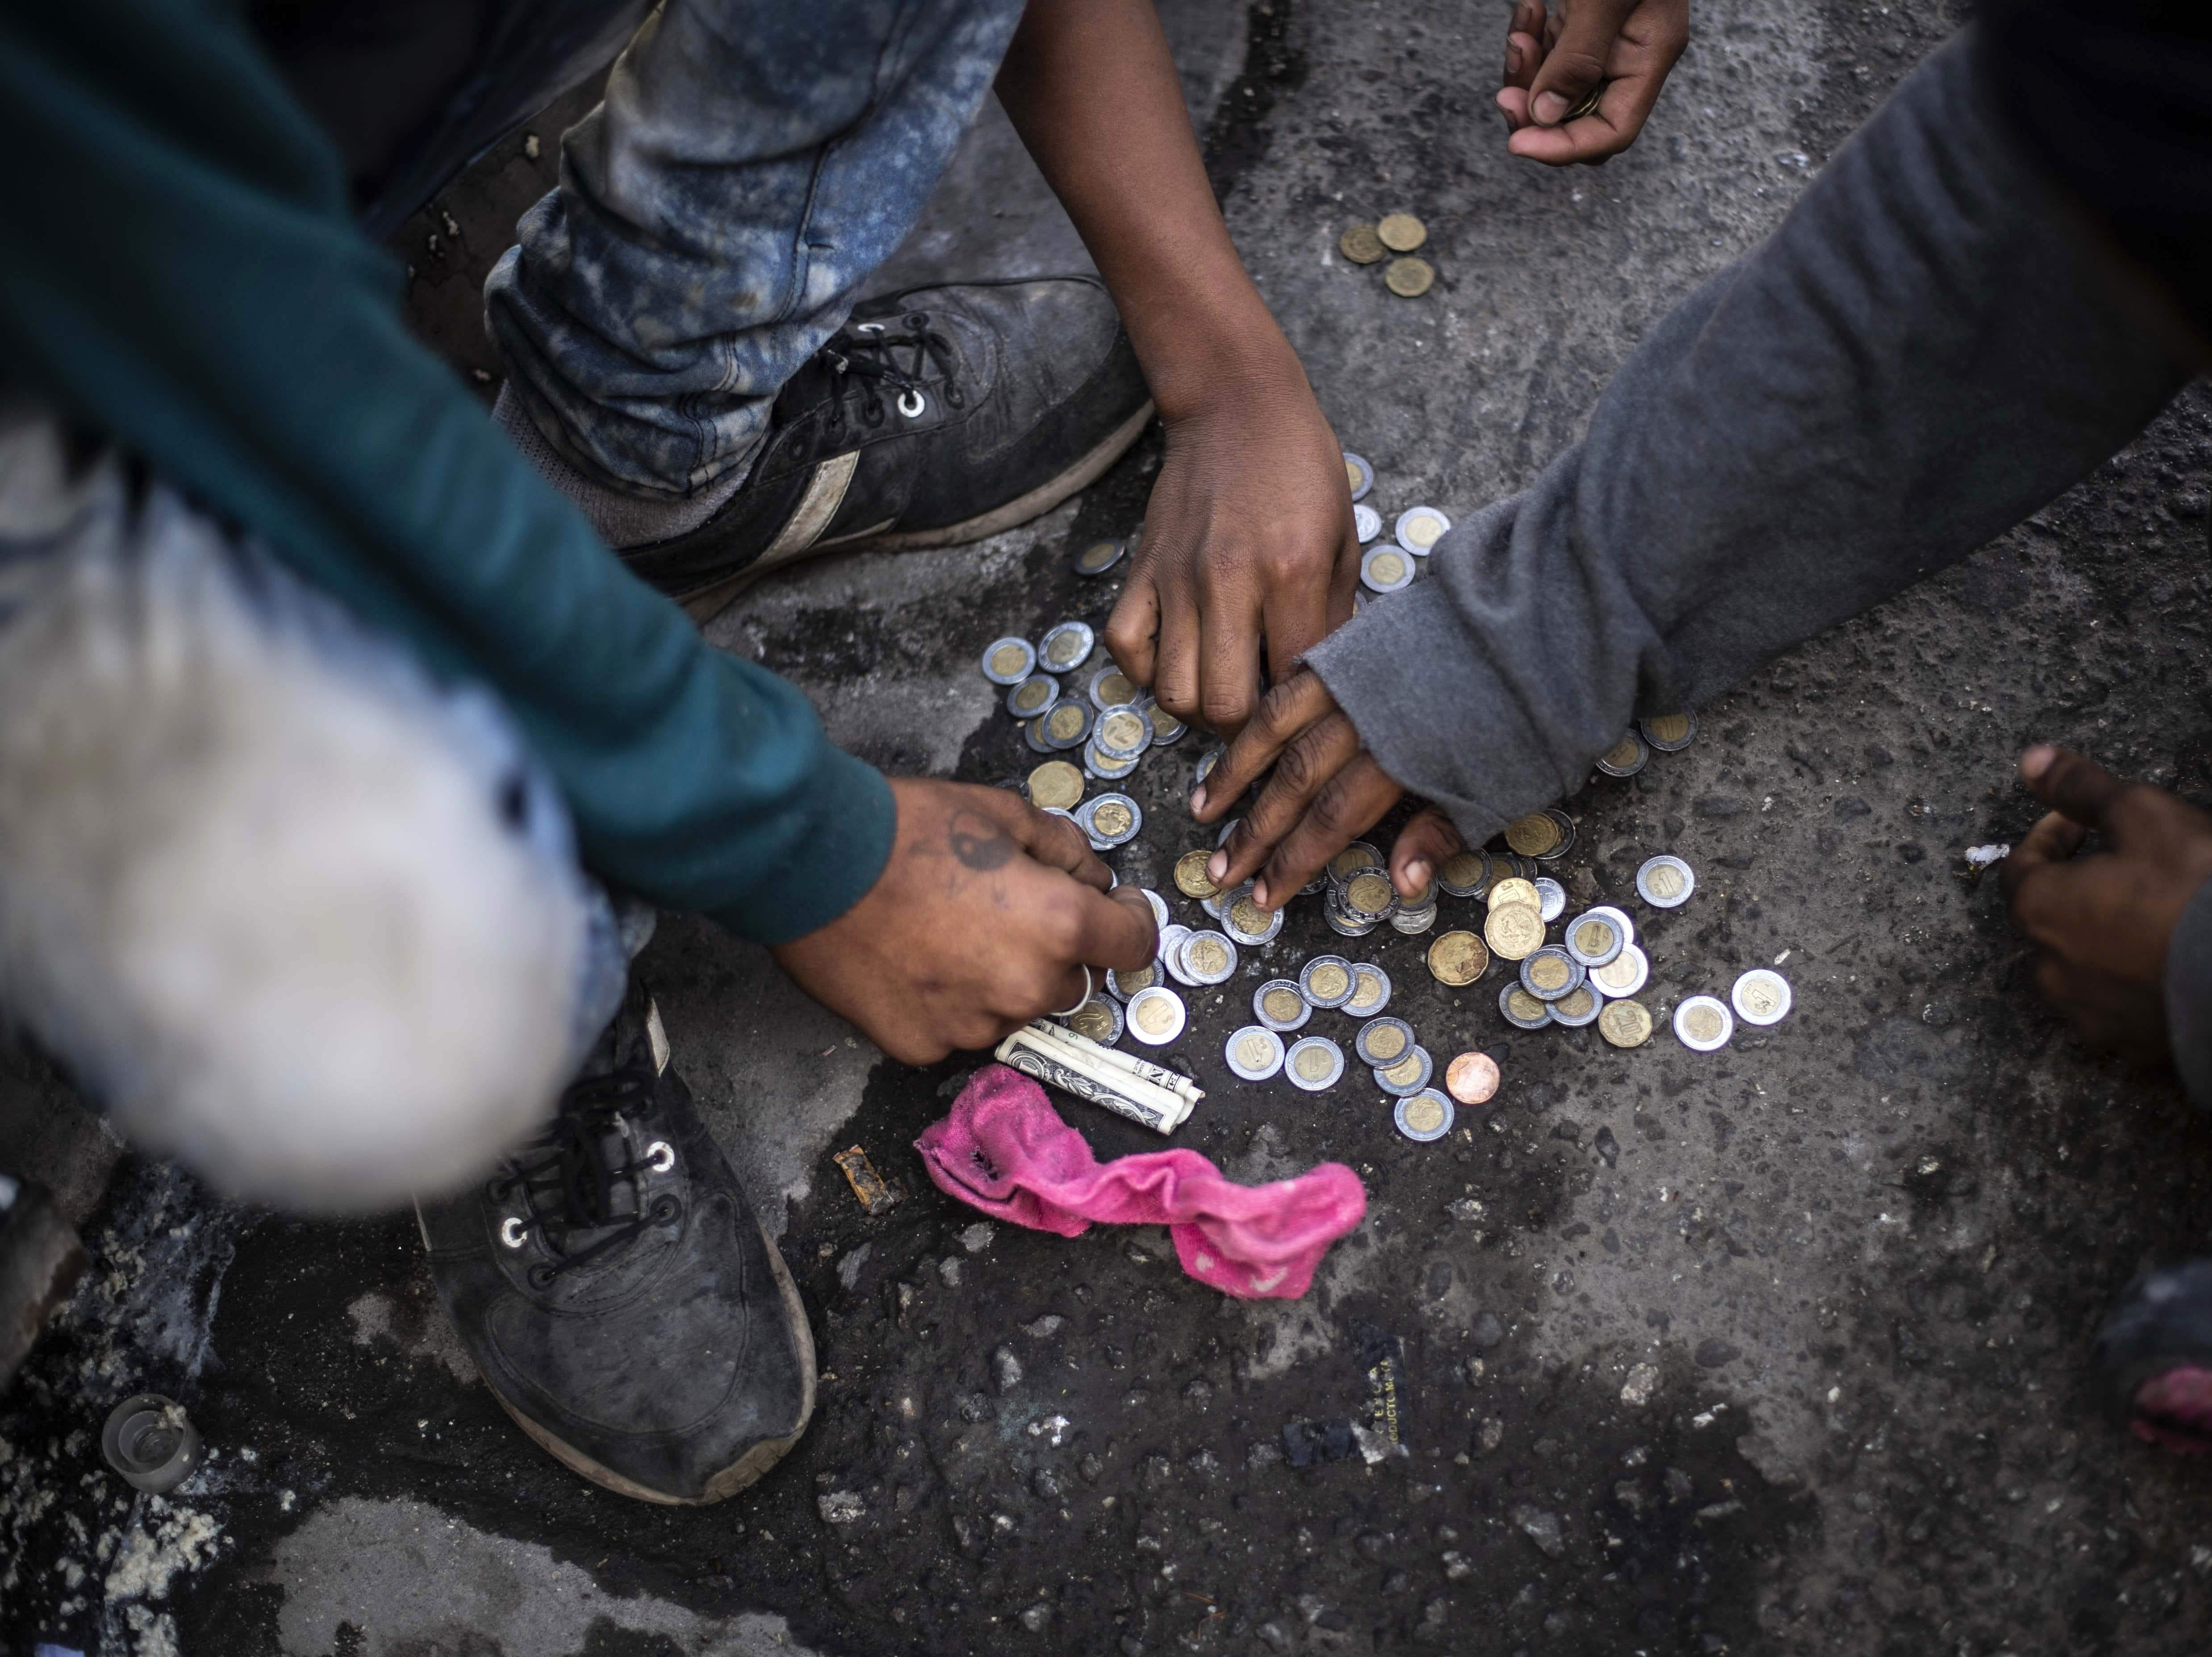 Central American migrants moving towards the United States in hopes of a better life, count coins at the Alfa y Omega shelter, in Mexicali, Baja California state, Mexico, on Nov. 17, 2018.